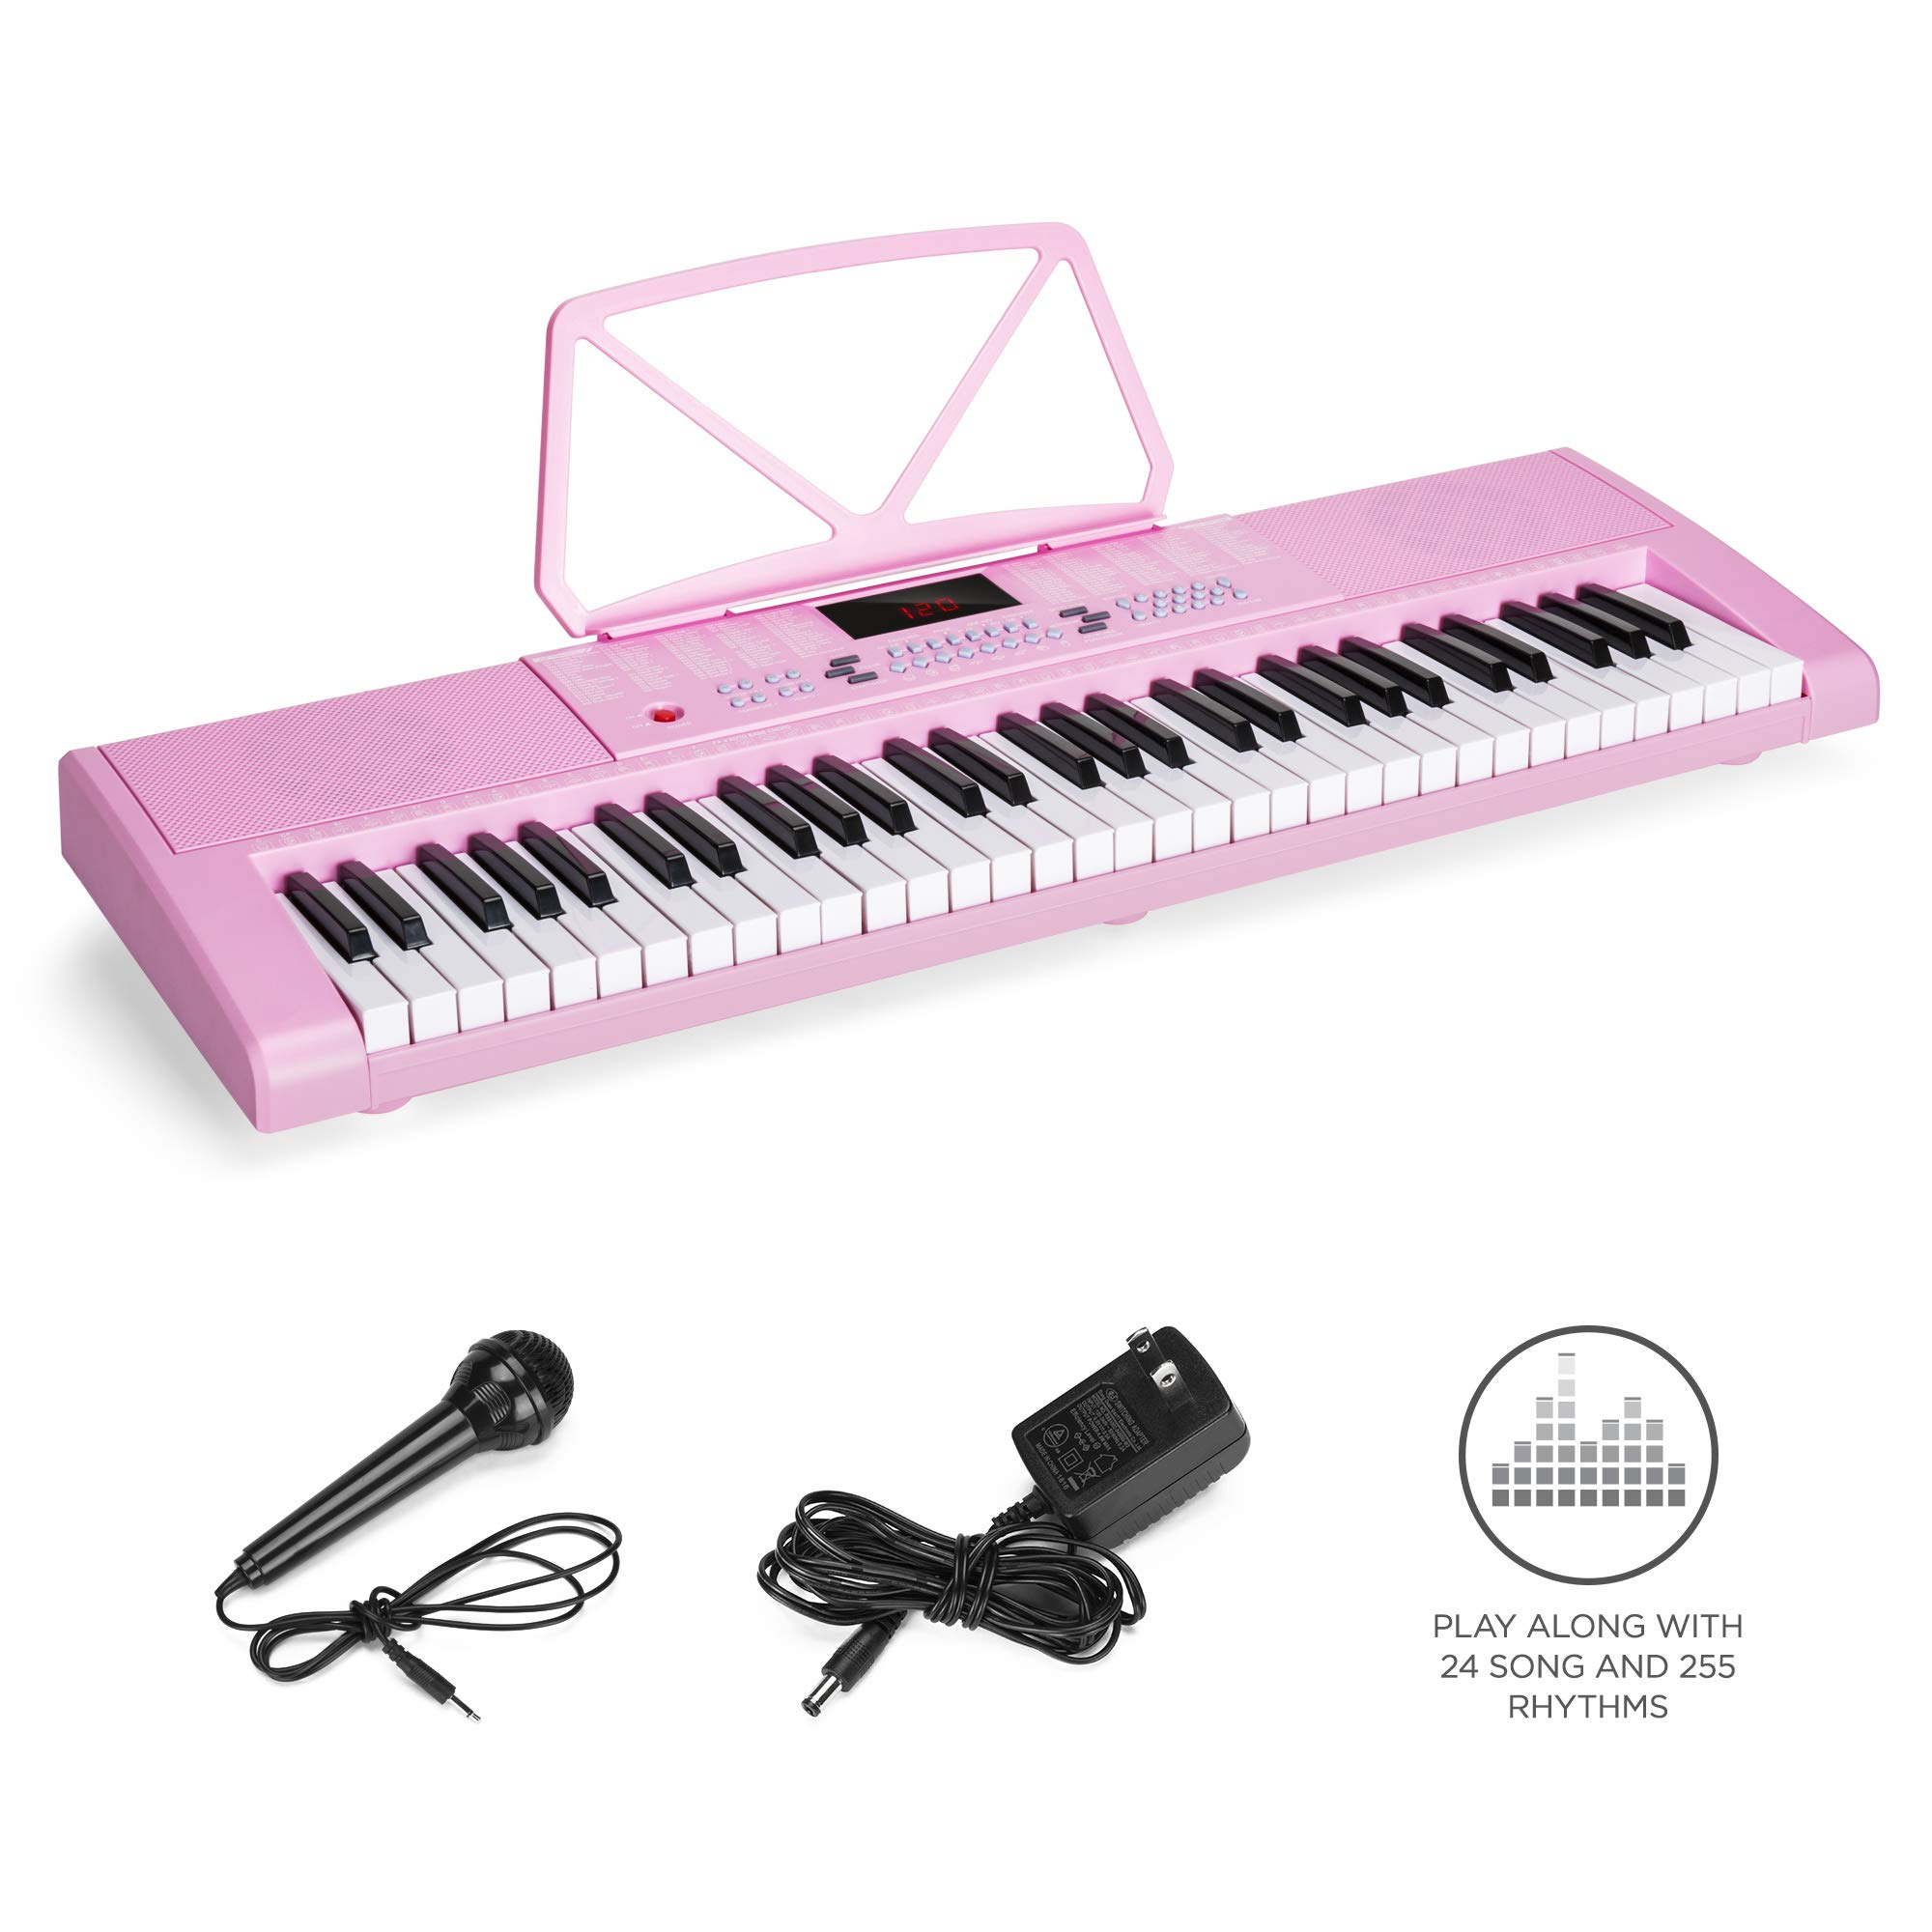 Best Choice Products 61-Key Portable Electronic Keyboard Piano w/LED Screen, Record & Playback Function, Microphone, Headphone Jack (Pink) by Best Choice Products